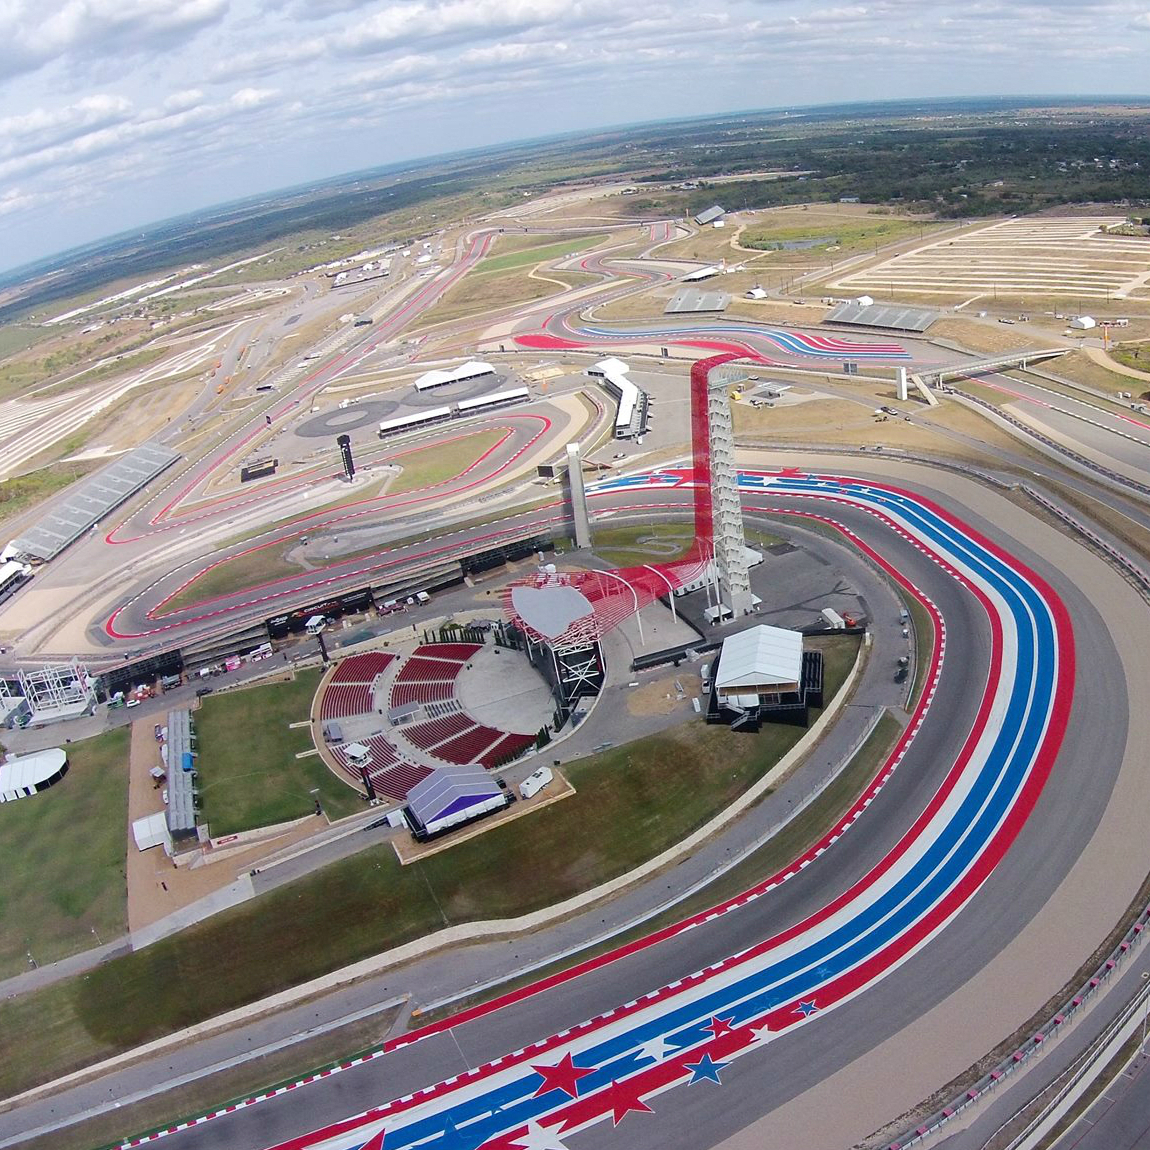 Circuit of the Americas aerial race track Austin 360 Amphitheater tower 2015